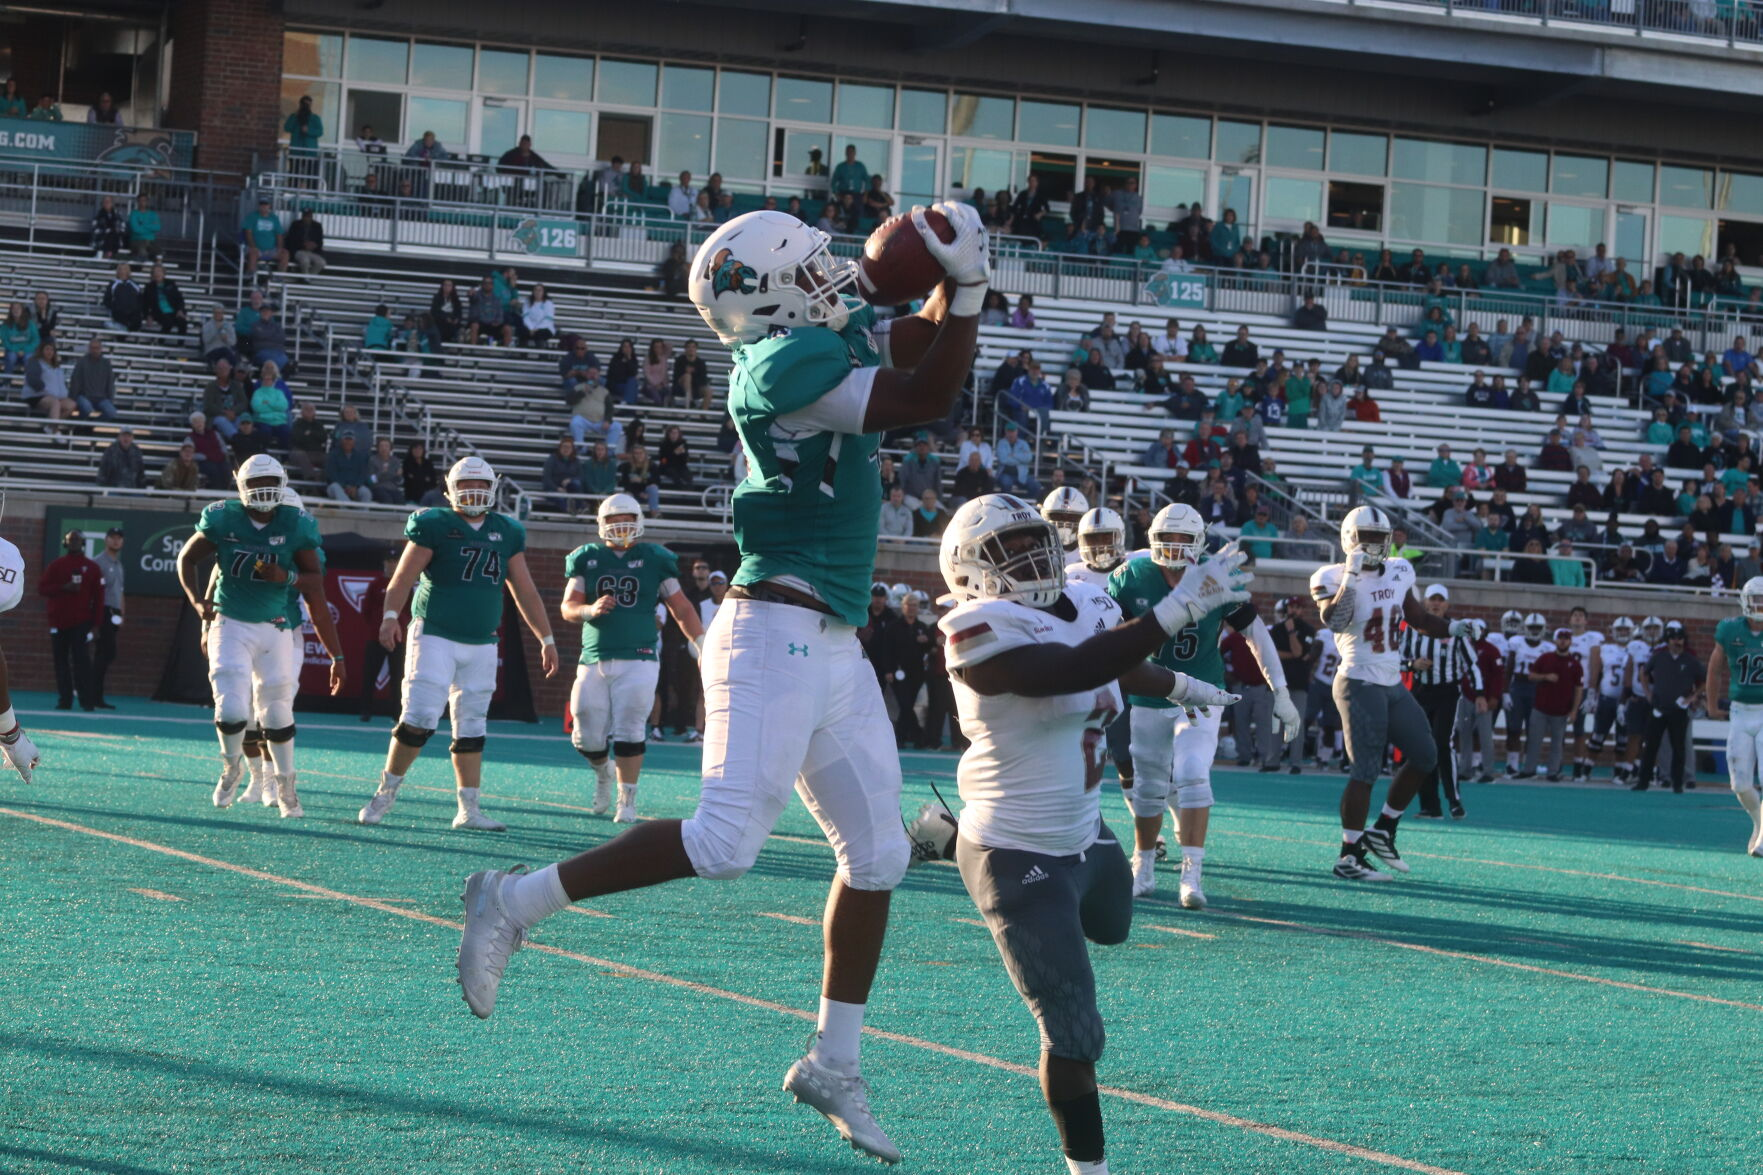 Coastal Carolina Completes Revised Football Schedule Adds Campbell Covid Coverage Myhorrynews com